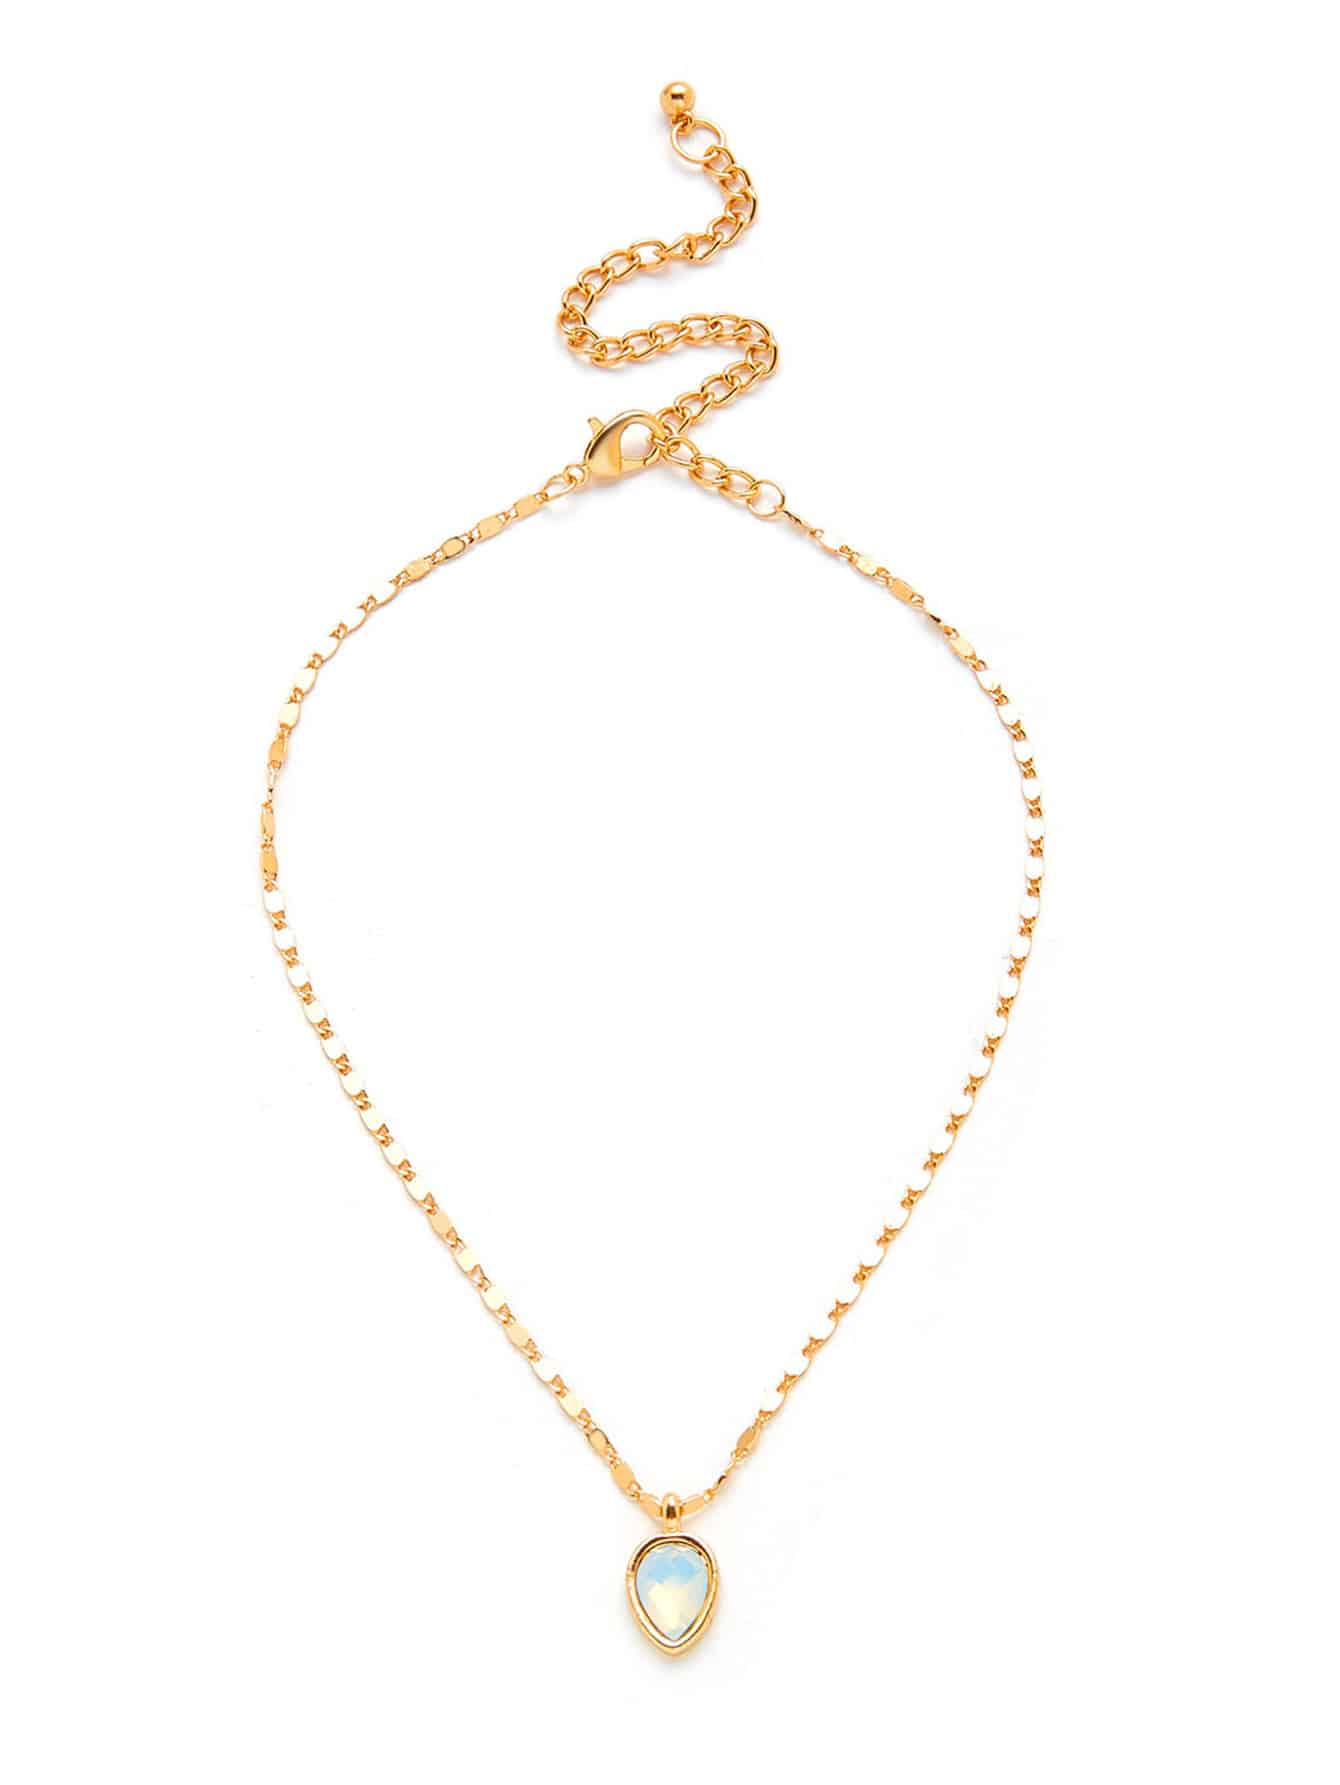 Water Drop Shaped Pendant Chain Necklace round drop chain necklace